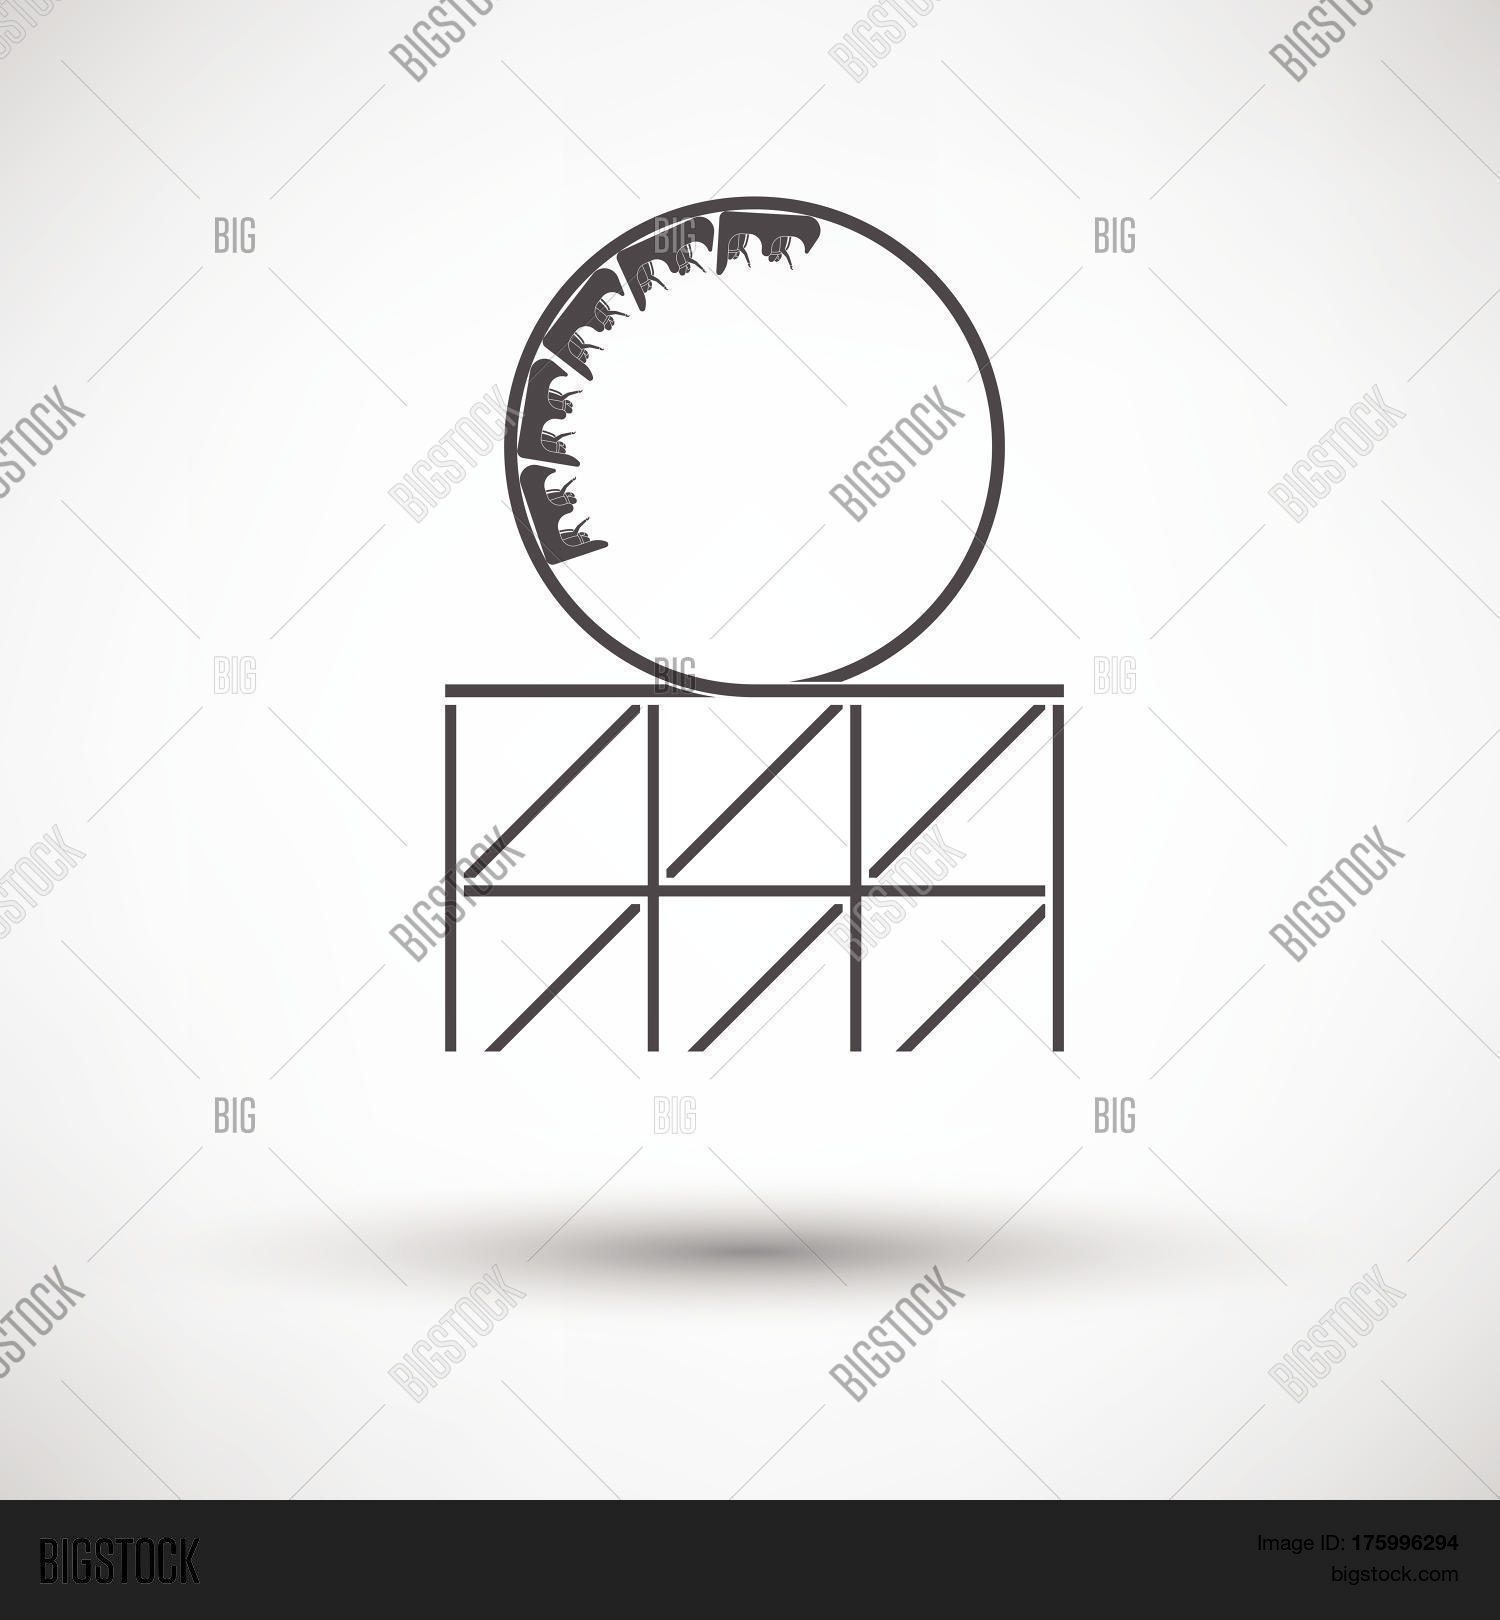 Roller Coaster Loop Vector Photo Free Trial Bigstock Rollercoaster Diagram Icon